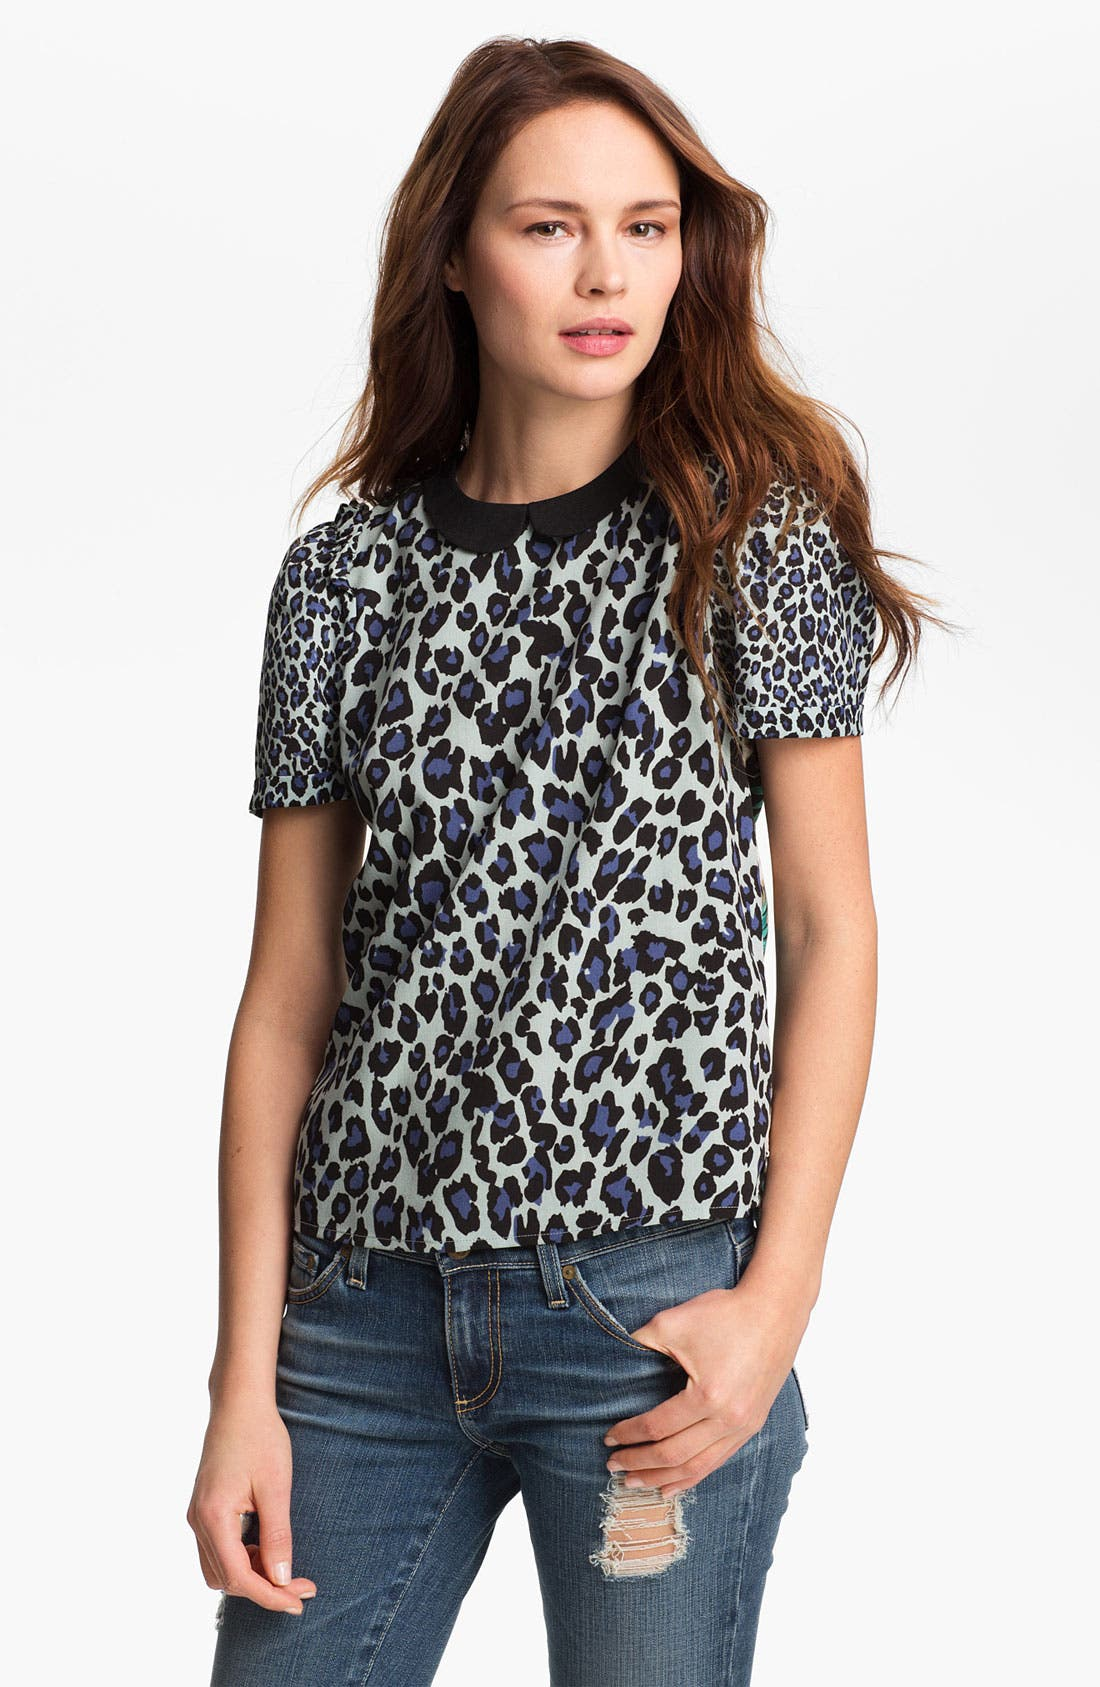 Alternate Image 1 Selected - Maison Scotch Peter Pan Collar Mix Print Top